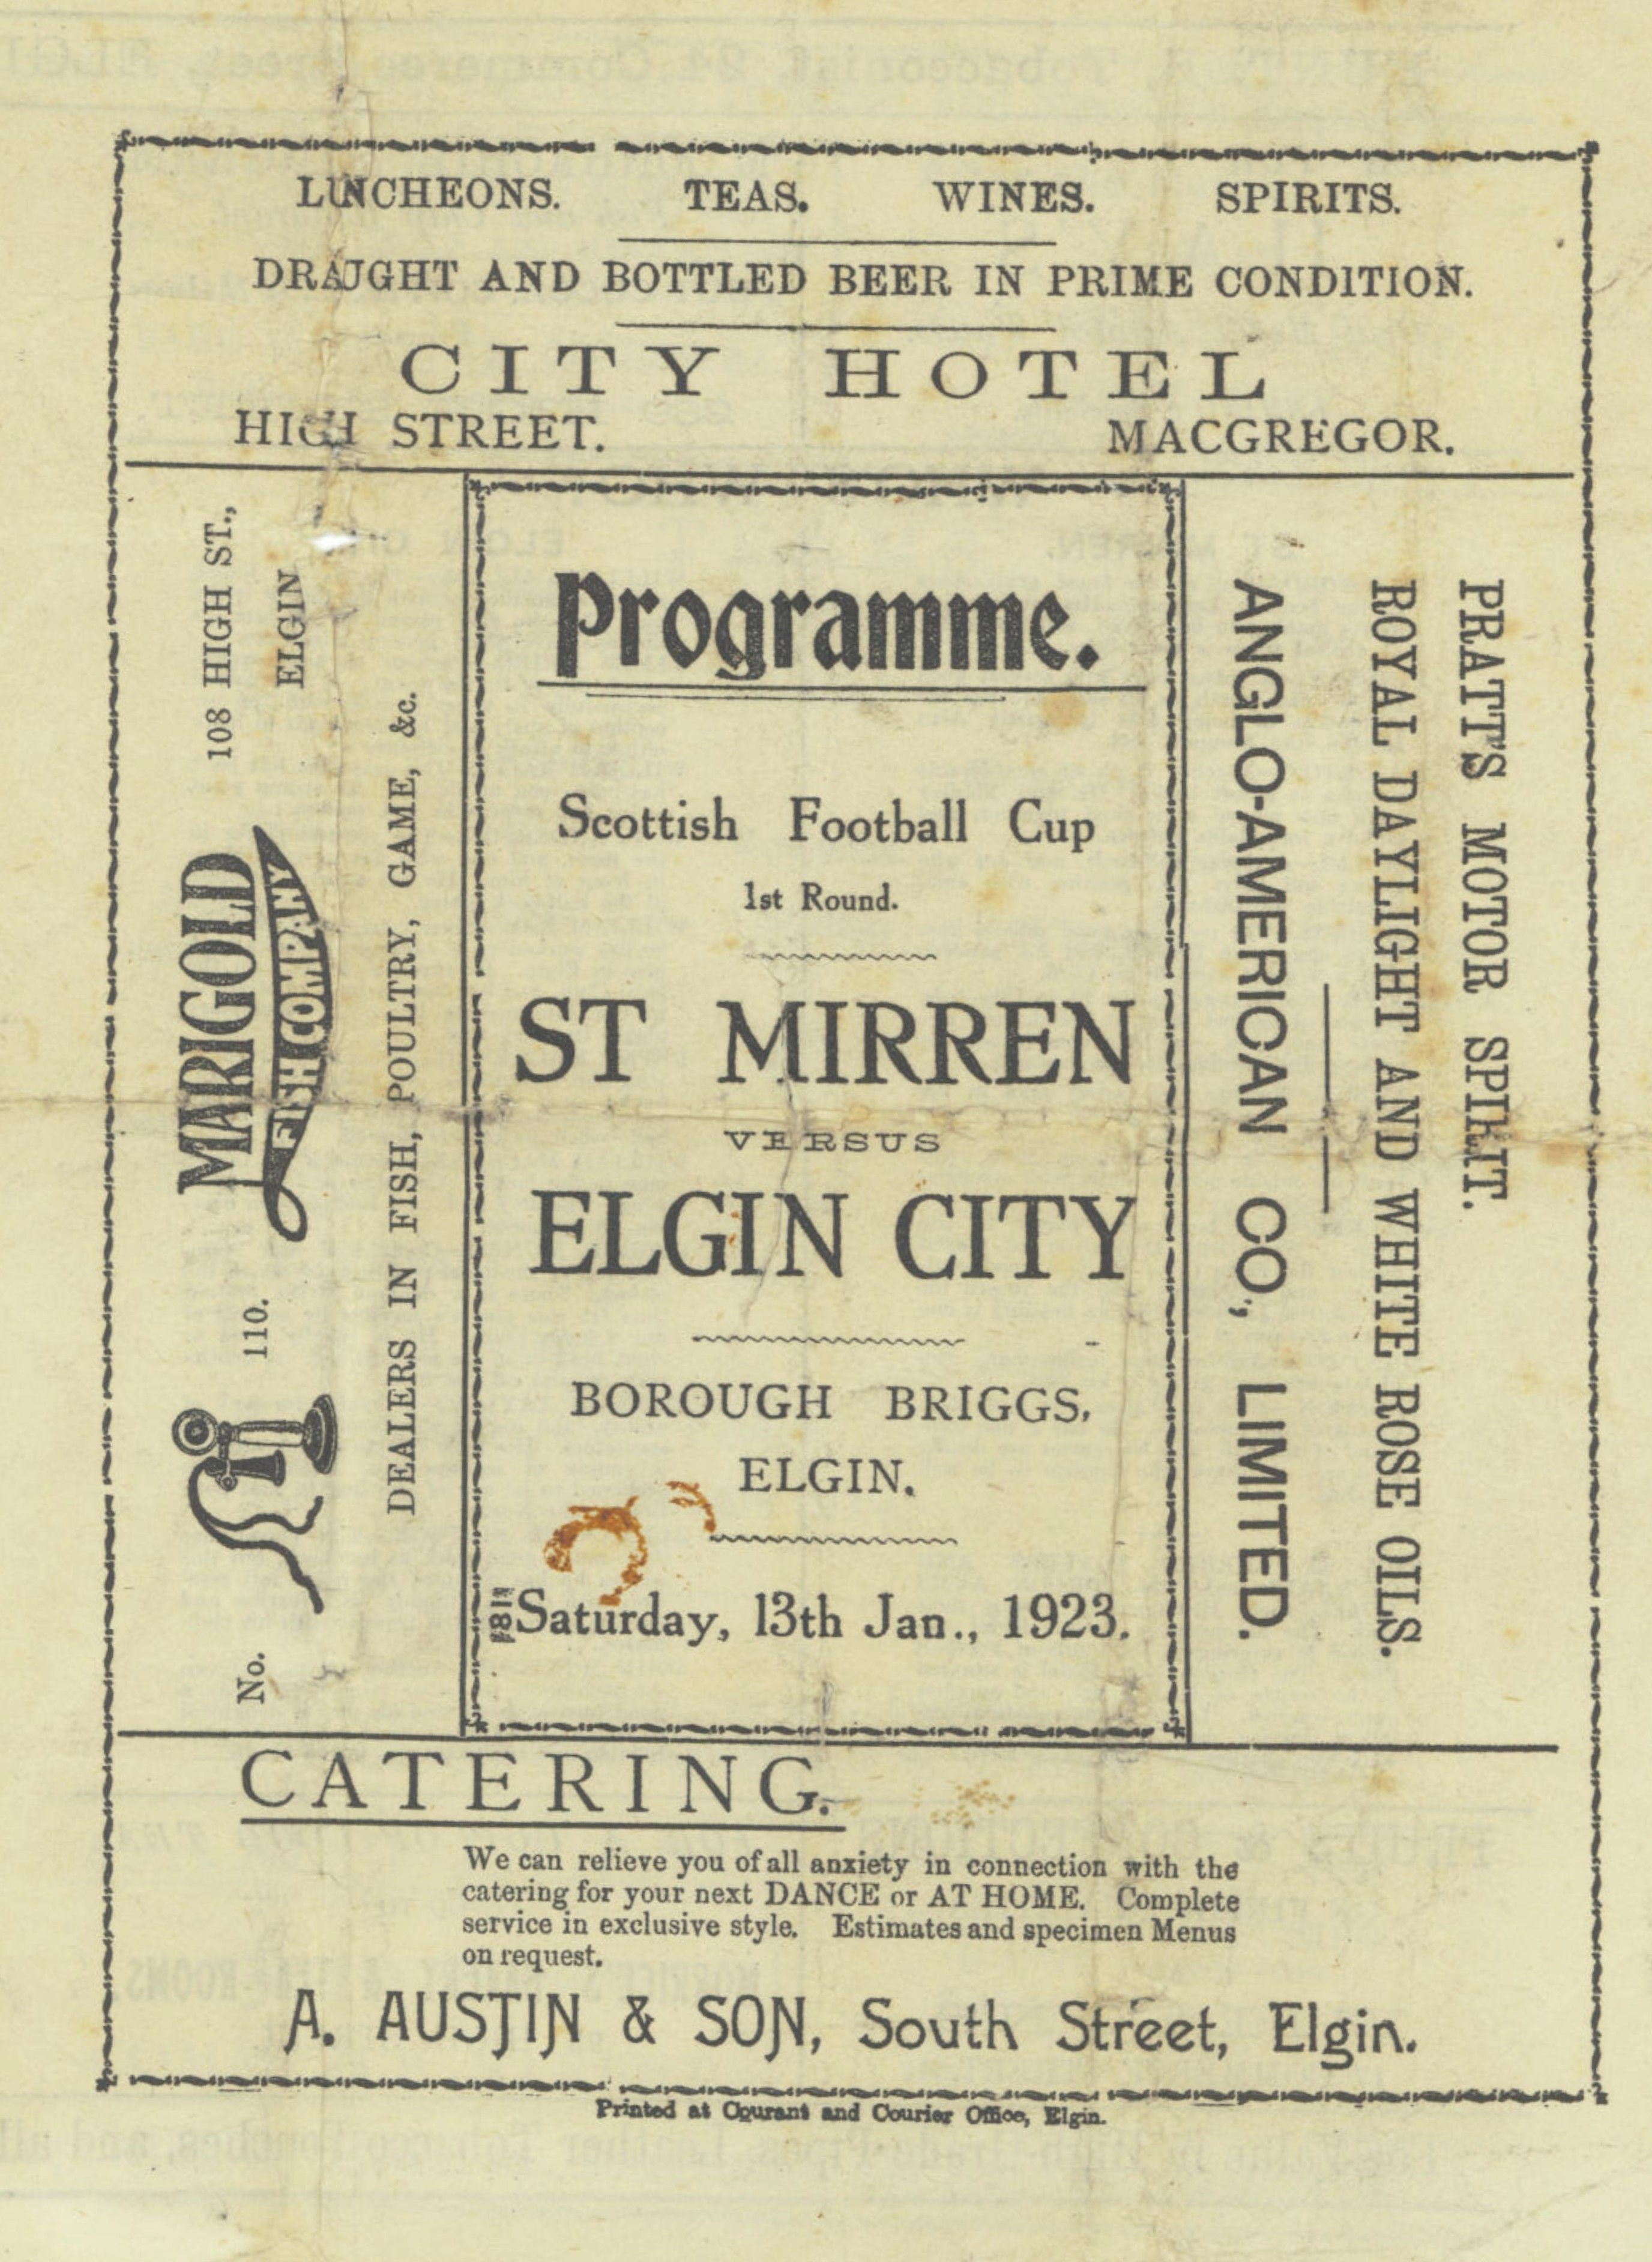 Elgin C. v St. Mirren 1923